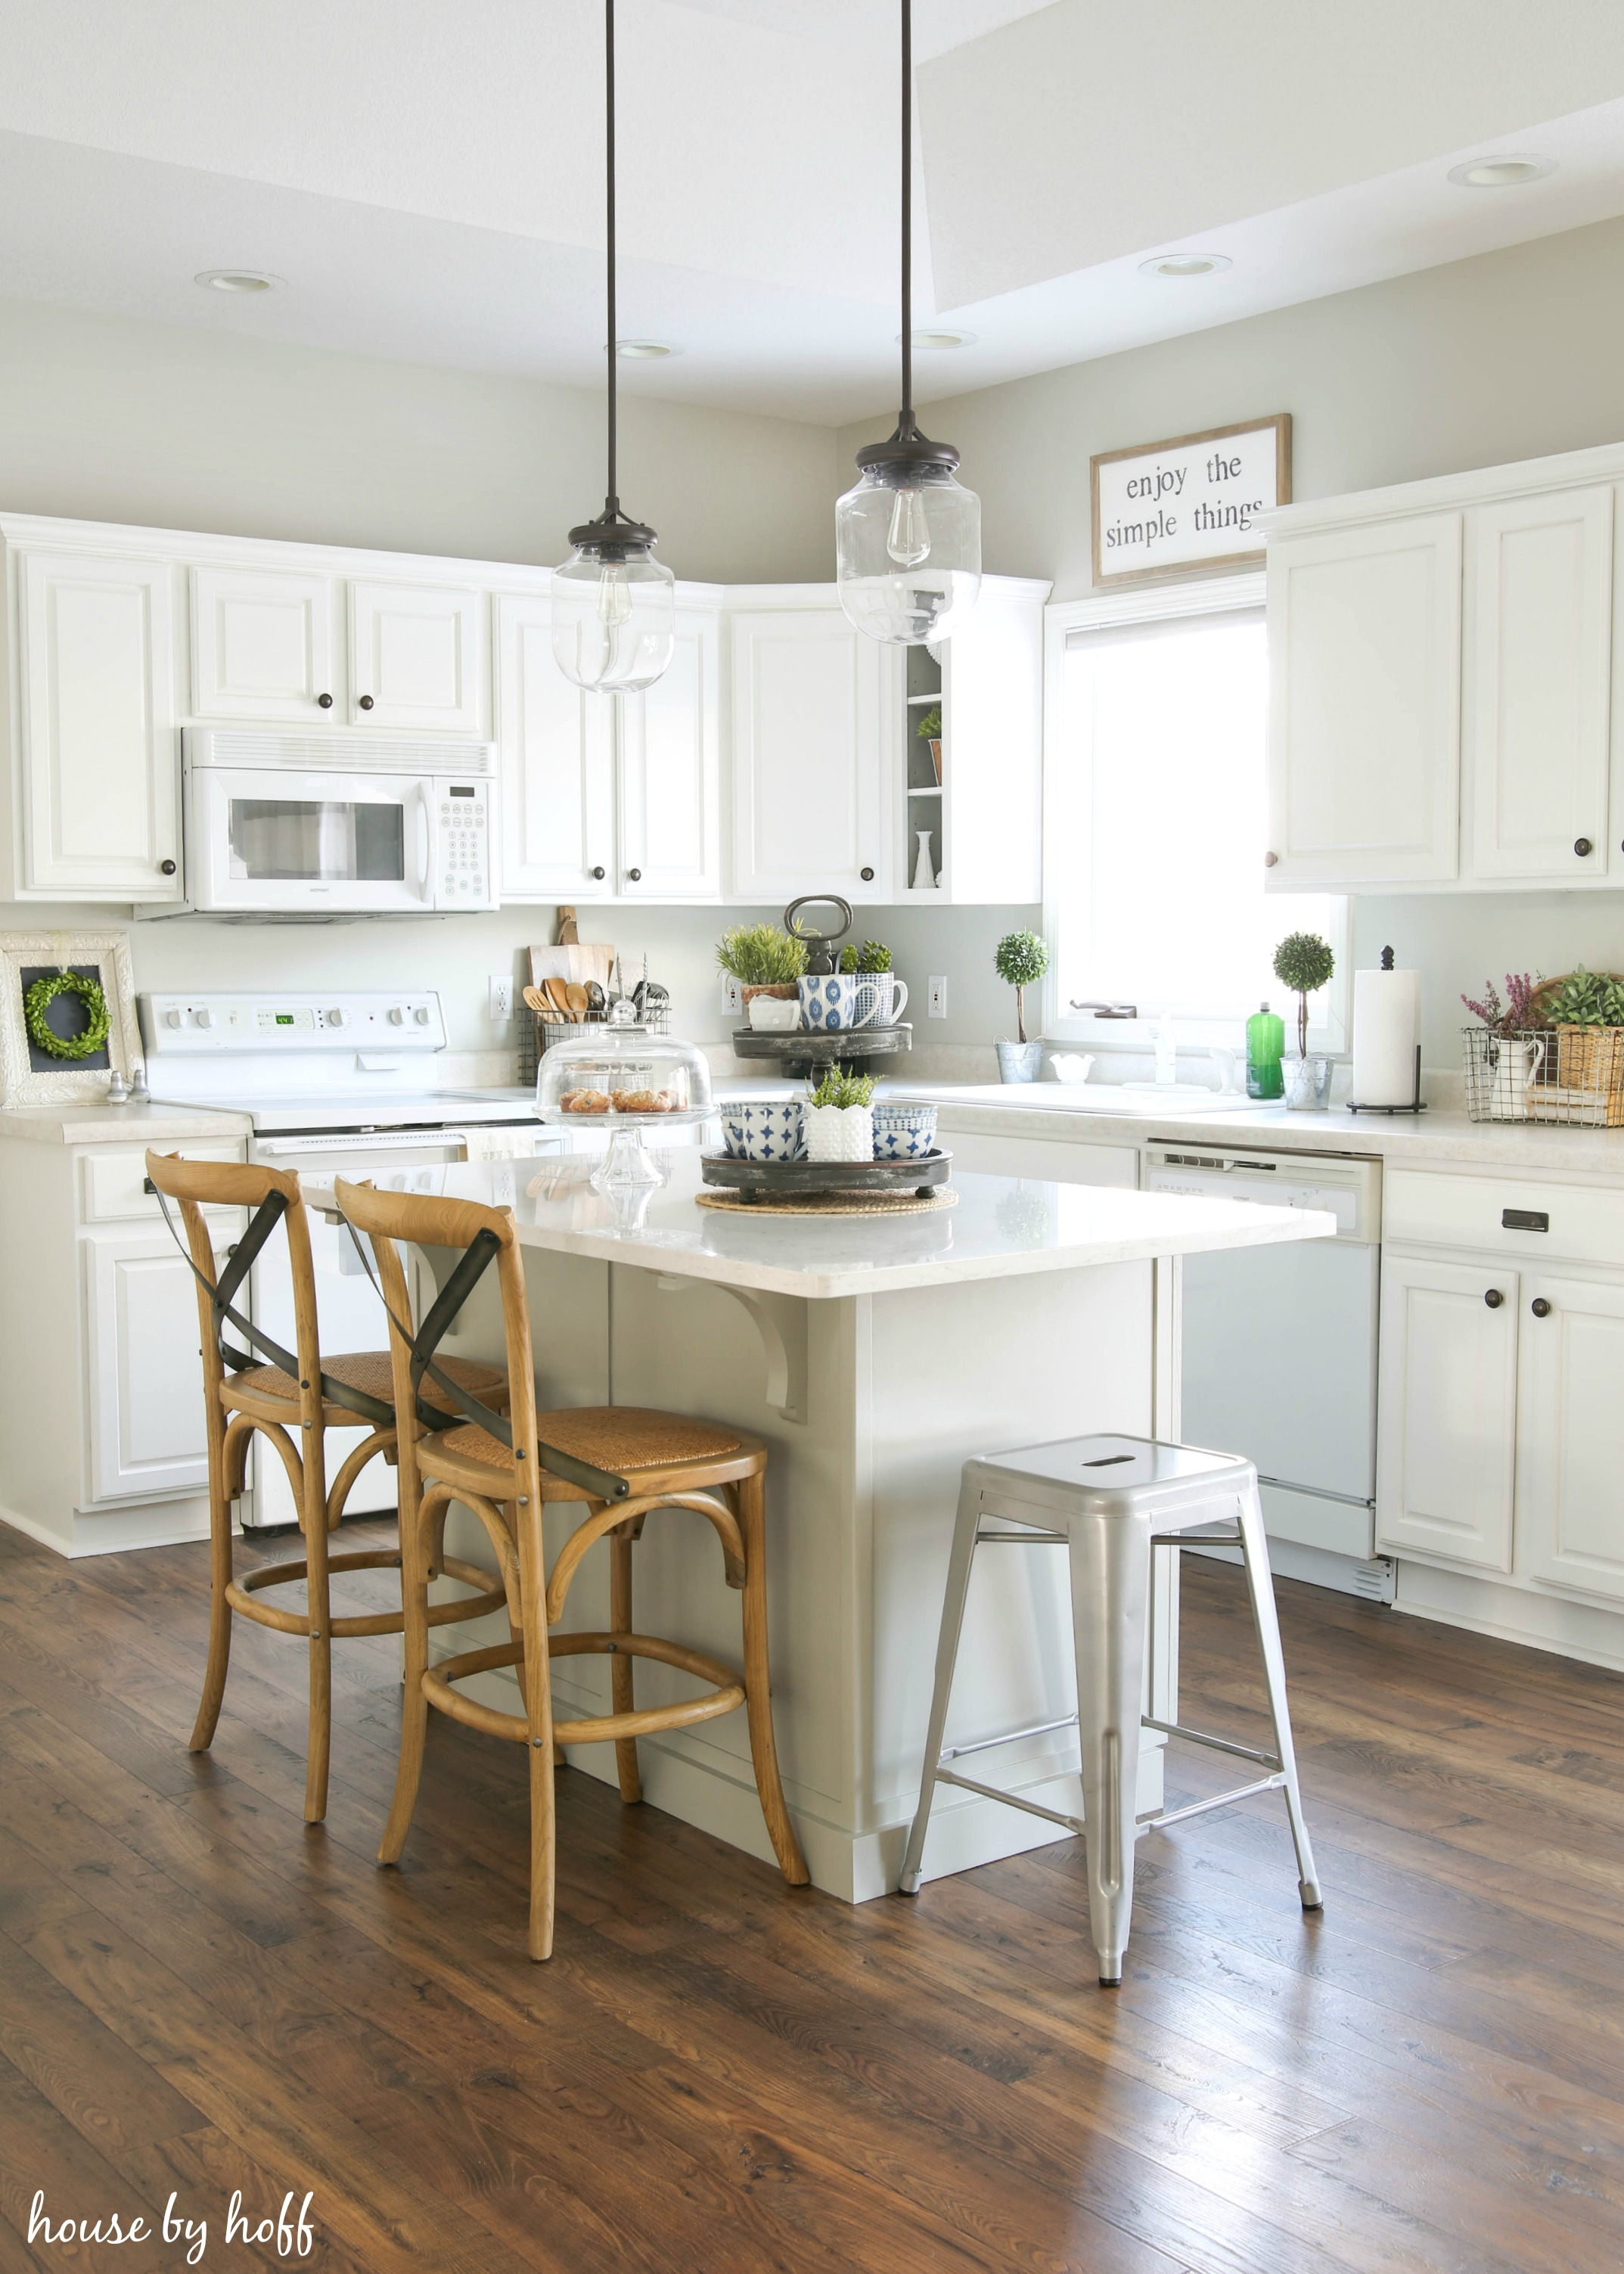 progress on my modern farmhouse kitchen house by hoff - Modern Farmhouse Kitchen